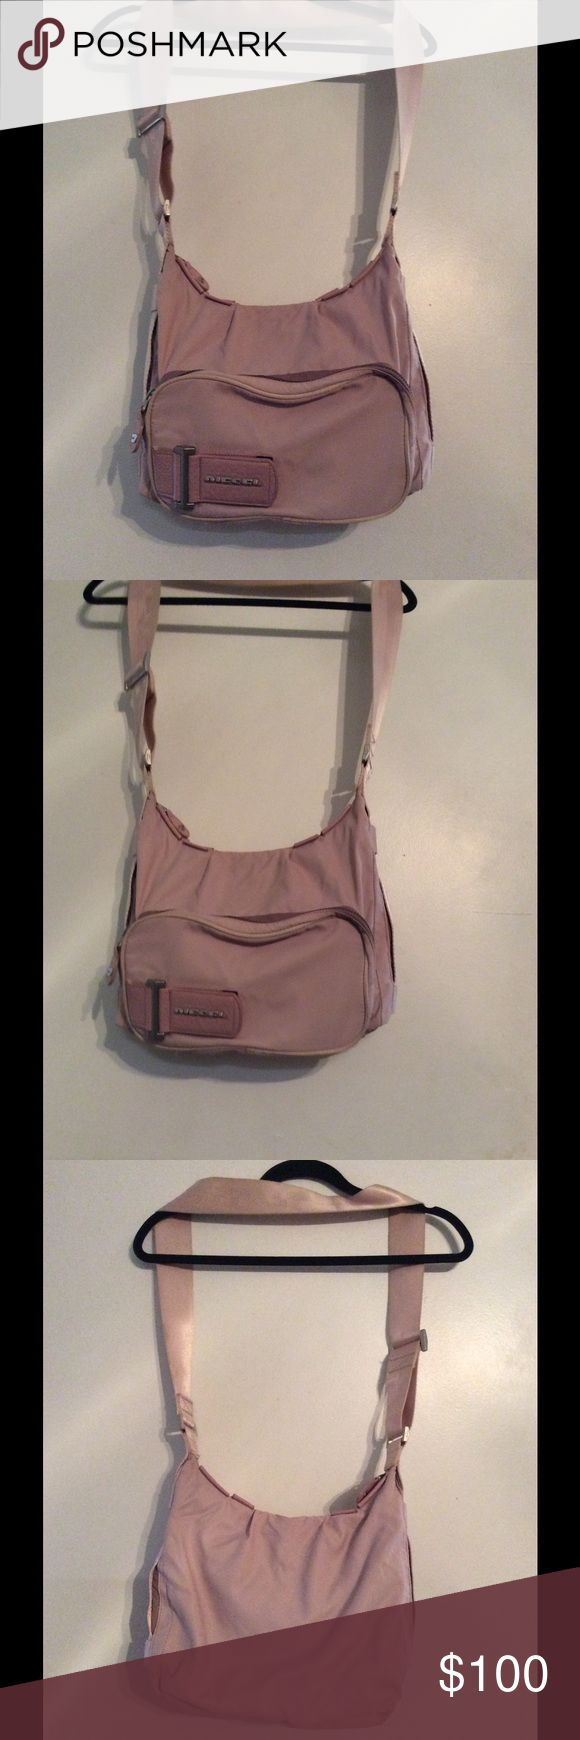 DIESEL PURSE/CROSSBODY PURSE PINK NYLON w/Adjustable Shoulder Strap. Excellent Condition. Large exterior zipper front pocket. 2 Interior slip pockets. 1 Interior zipper pocket. Velcro divided Interior. Diesel Bags Crossbody Bags